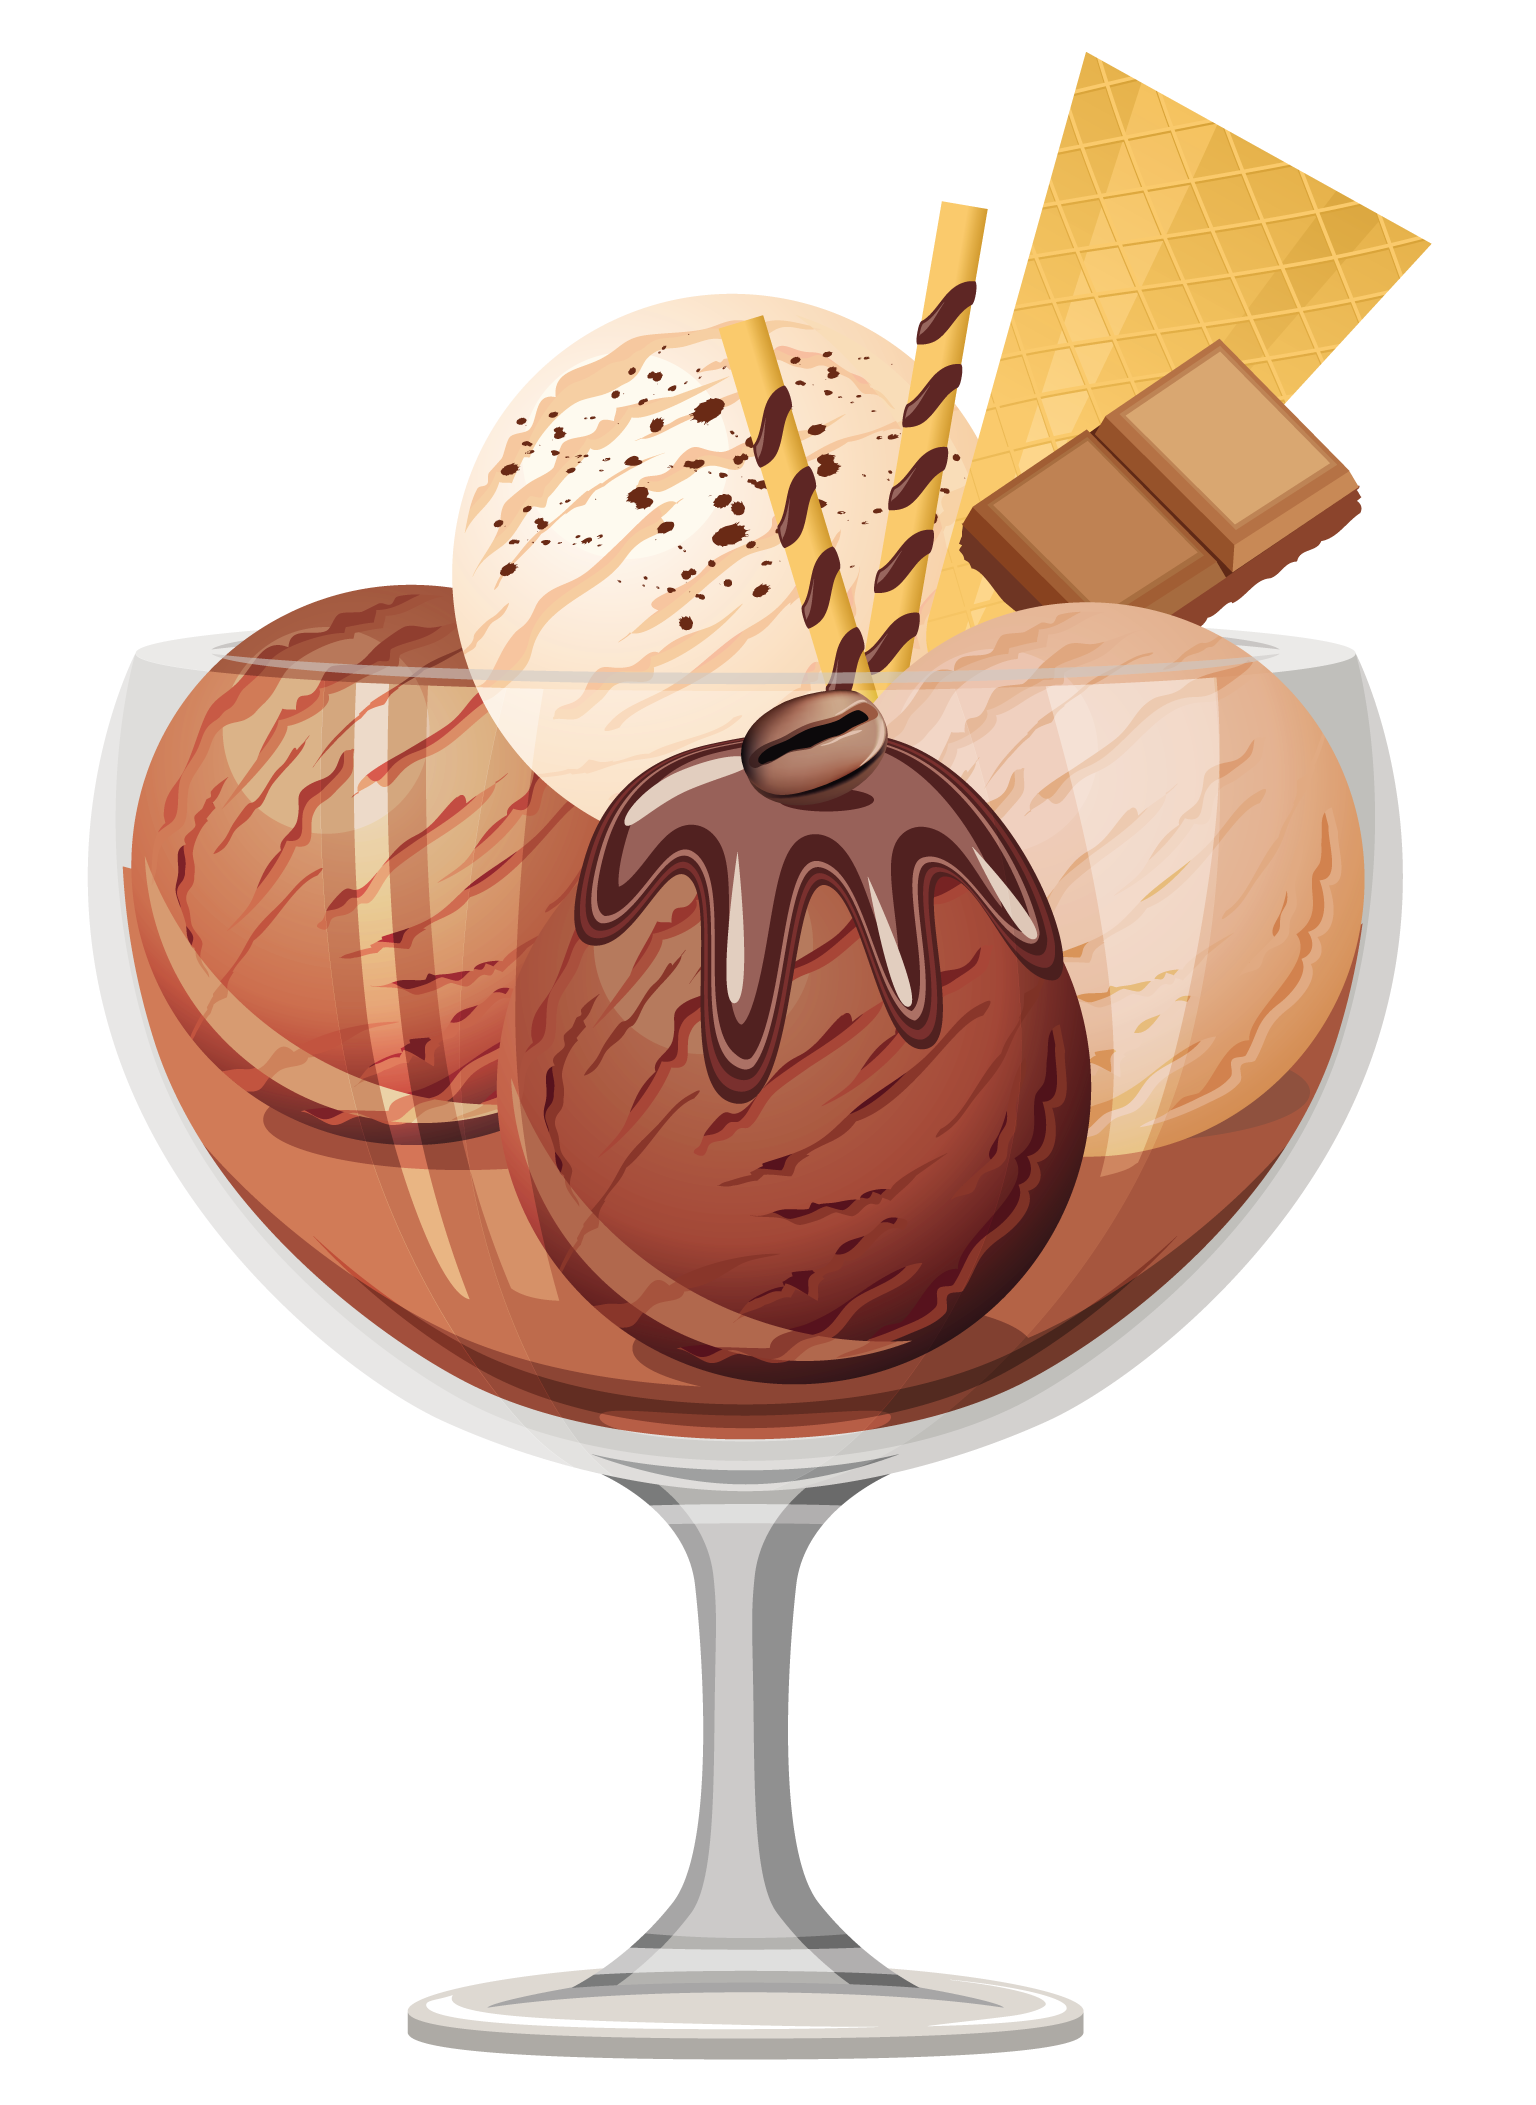 Transparent chocolate ice cream. Strawberries clipart strawberry sundae